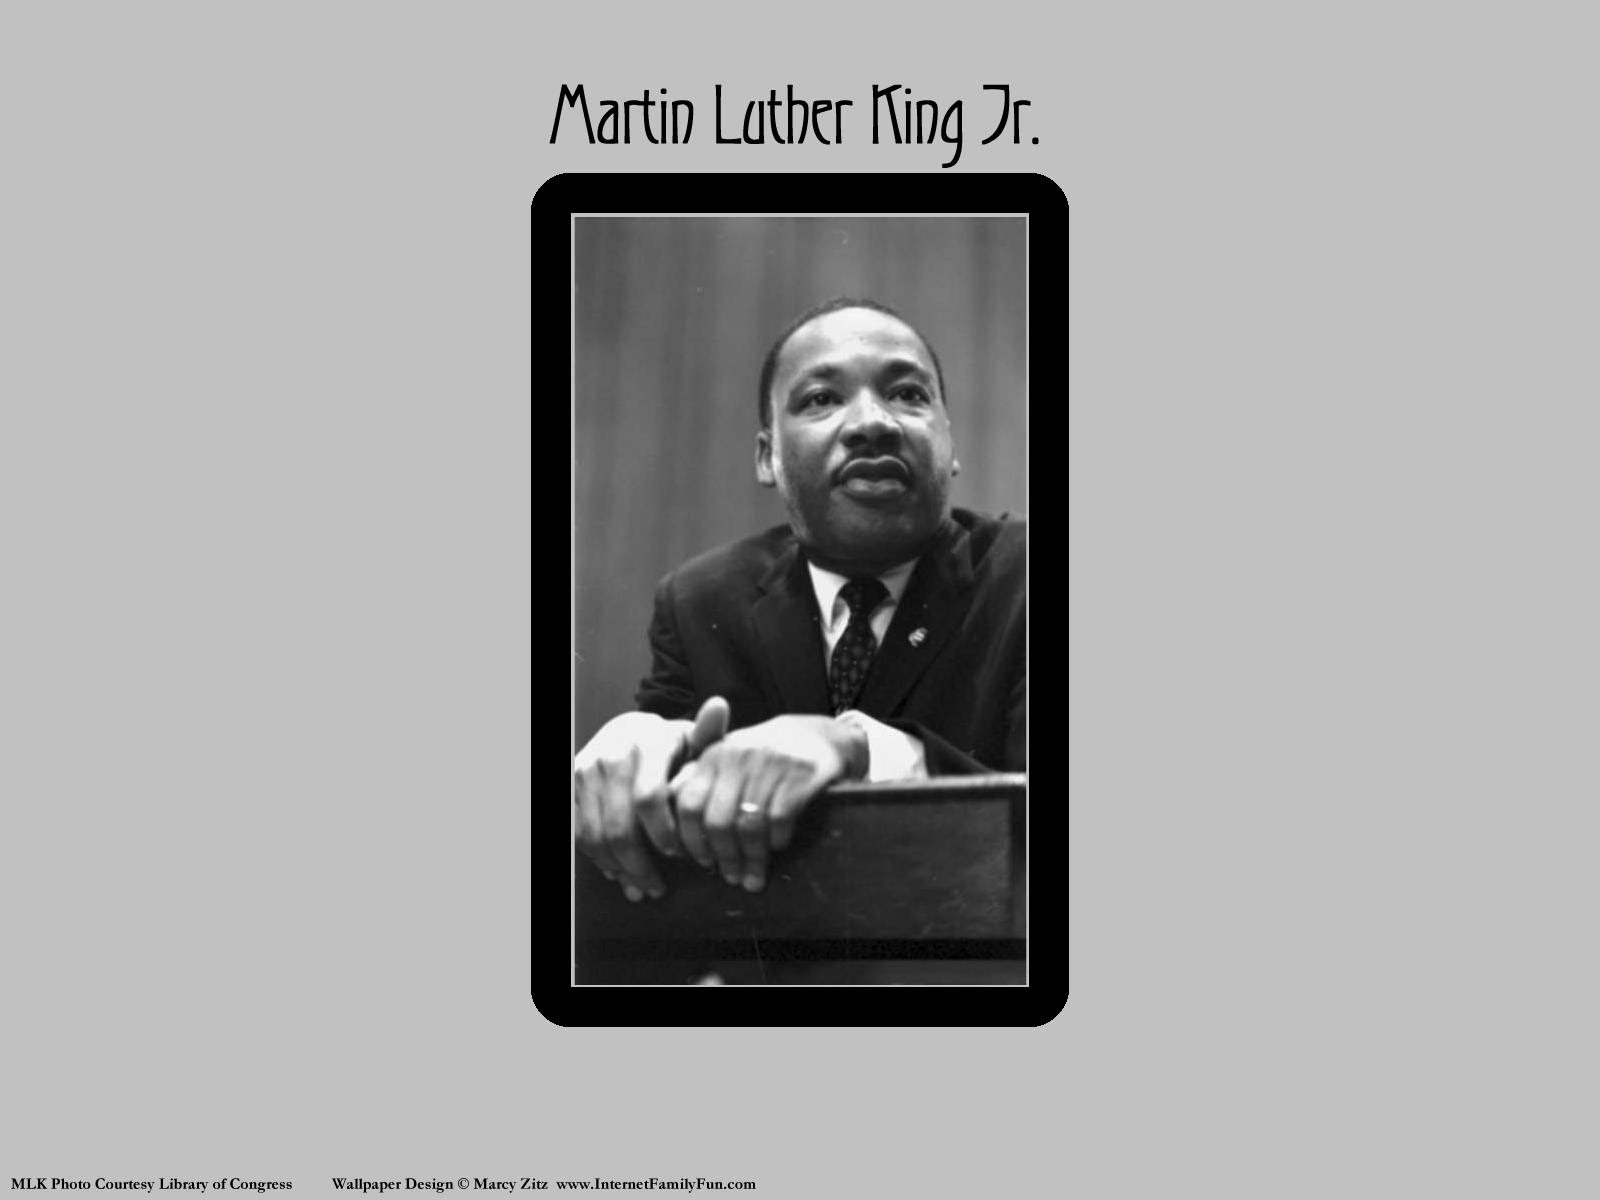 Martin Luther King Jr Day Wallpaper Background Image 1 For Your